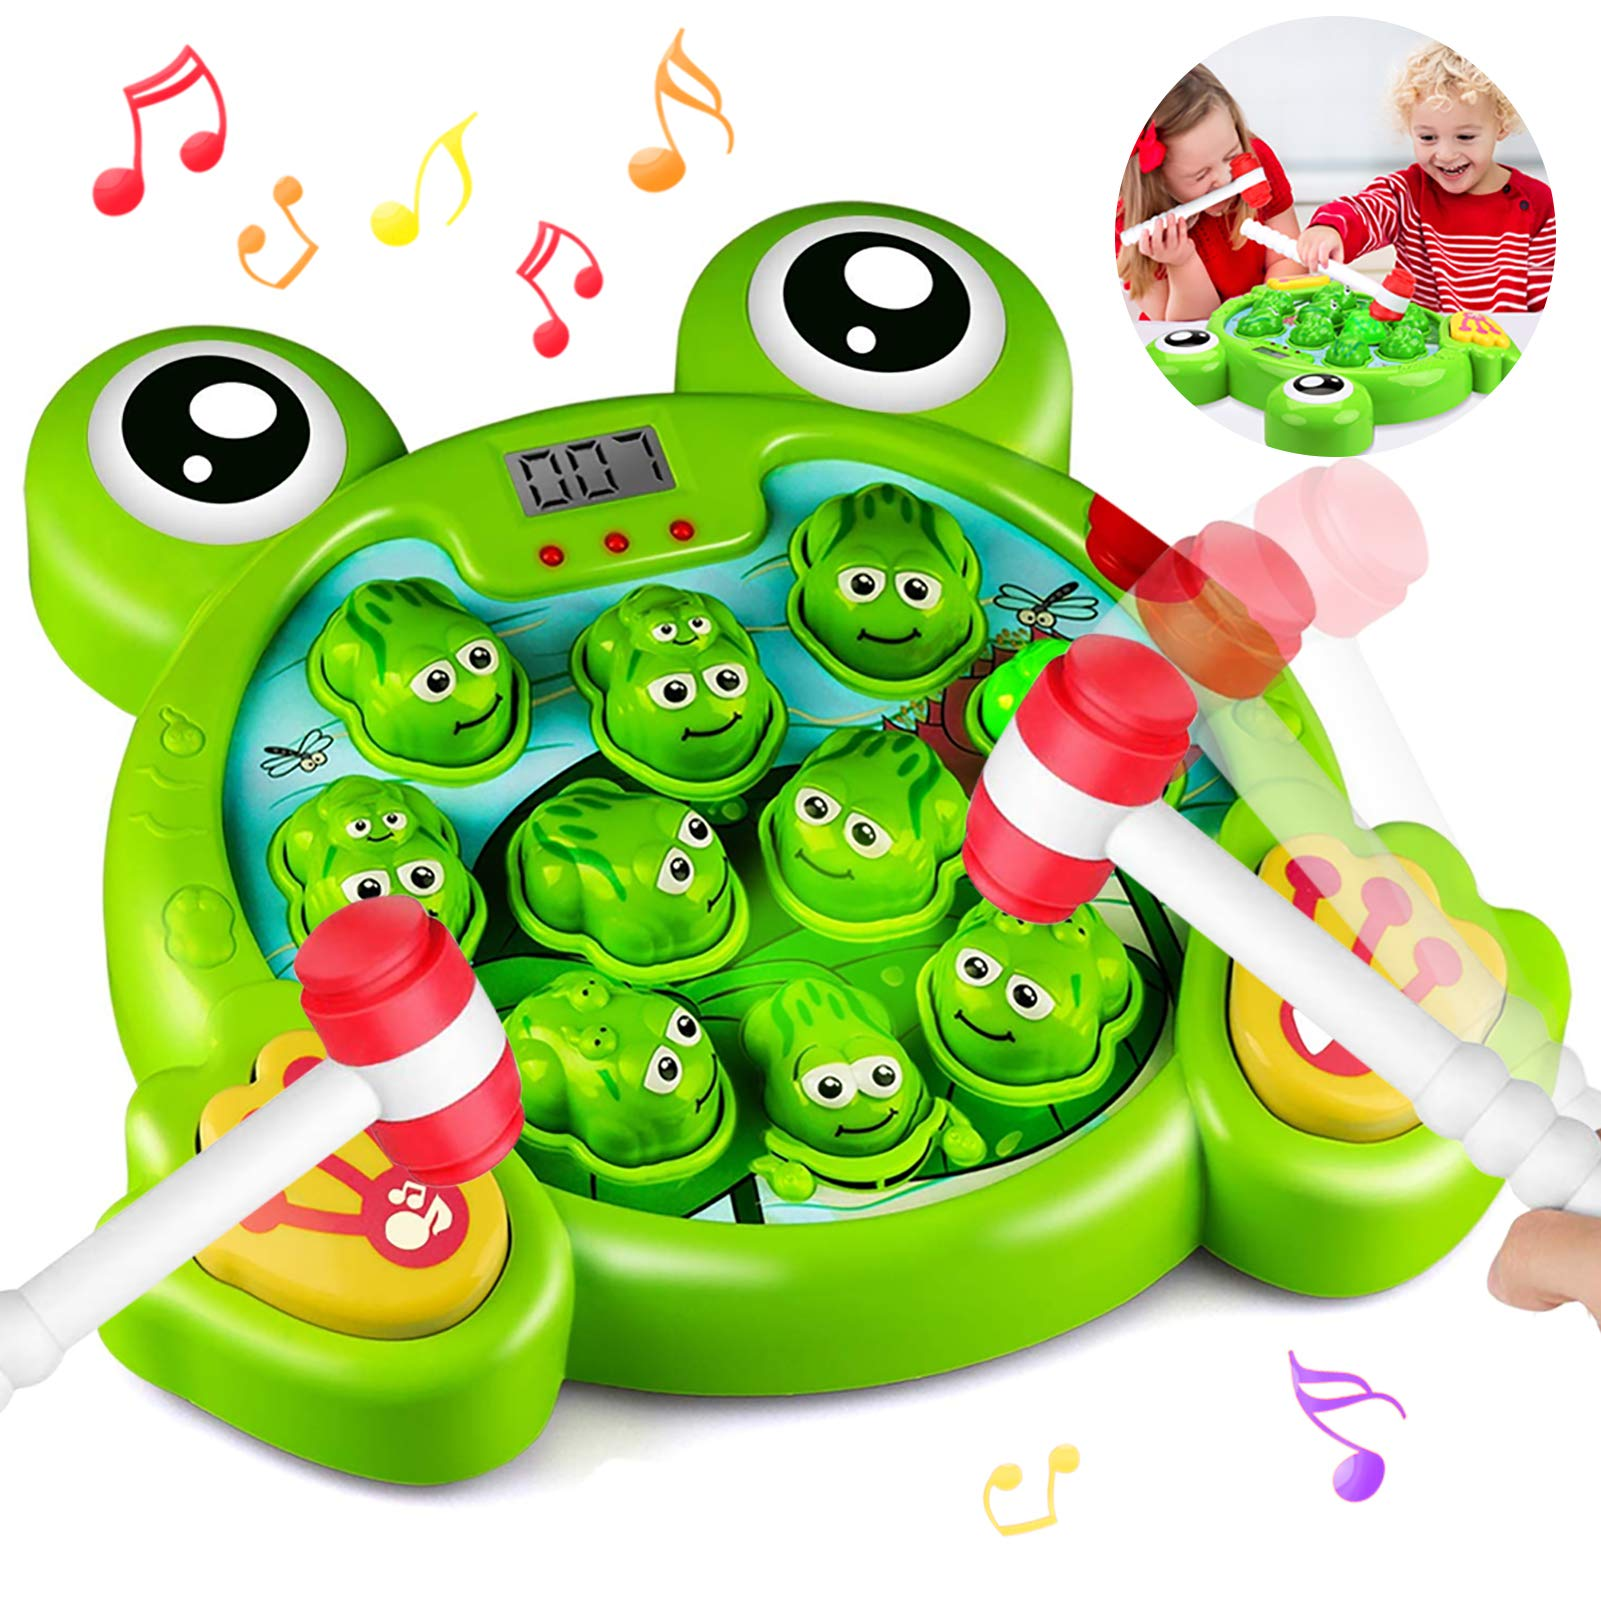 Early Educational Toys for 2 3 4 5 6 7 8 Year Old Boys,Girls,Kids and Toddlers Fun Gifts with Music,Lights Active Learning 2 Soft Hammer HOMOFY Interactive Whack A Frog Game